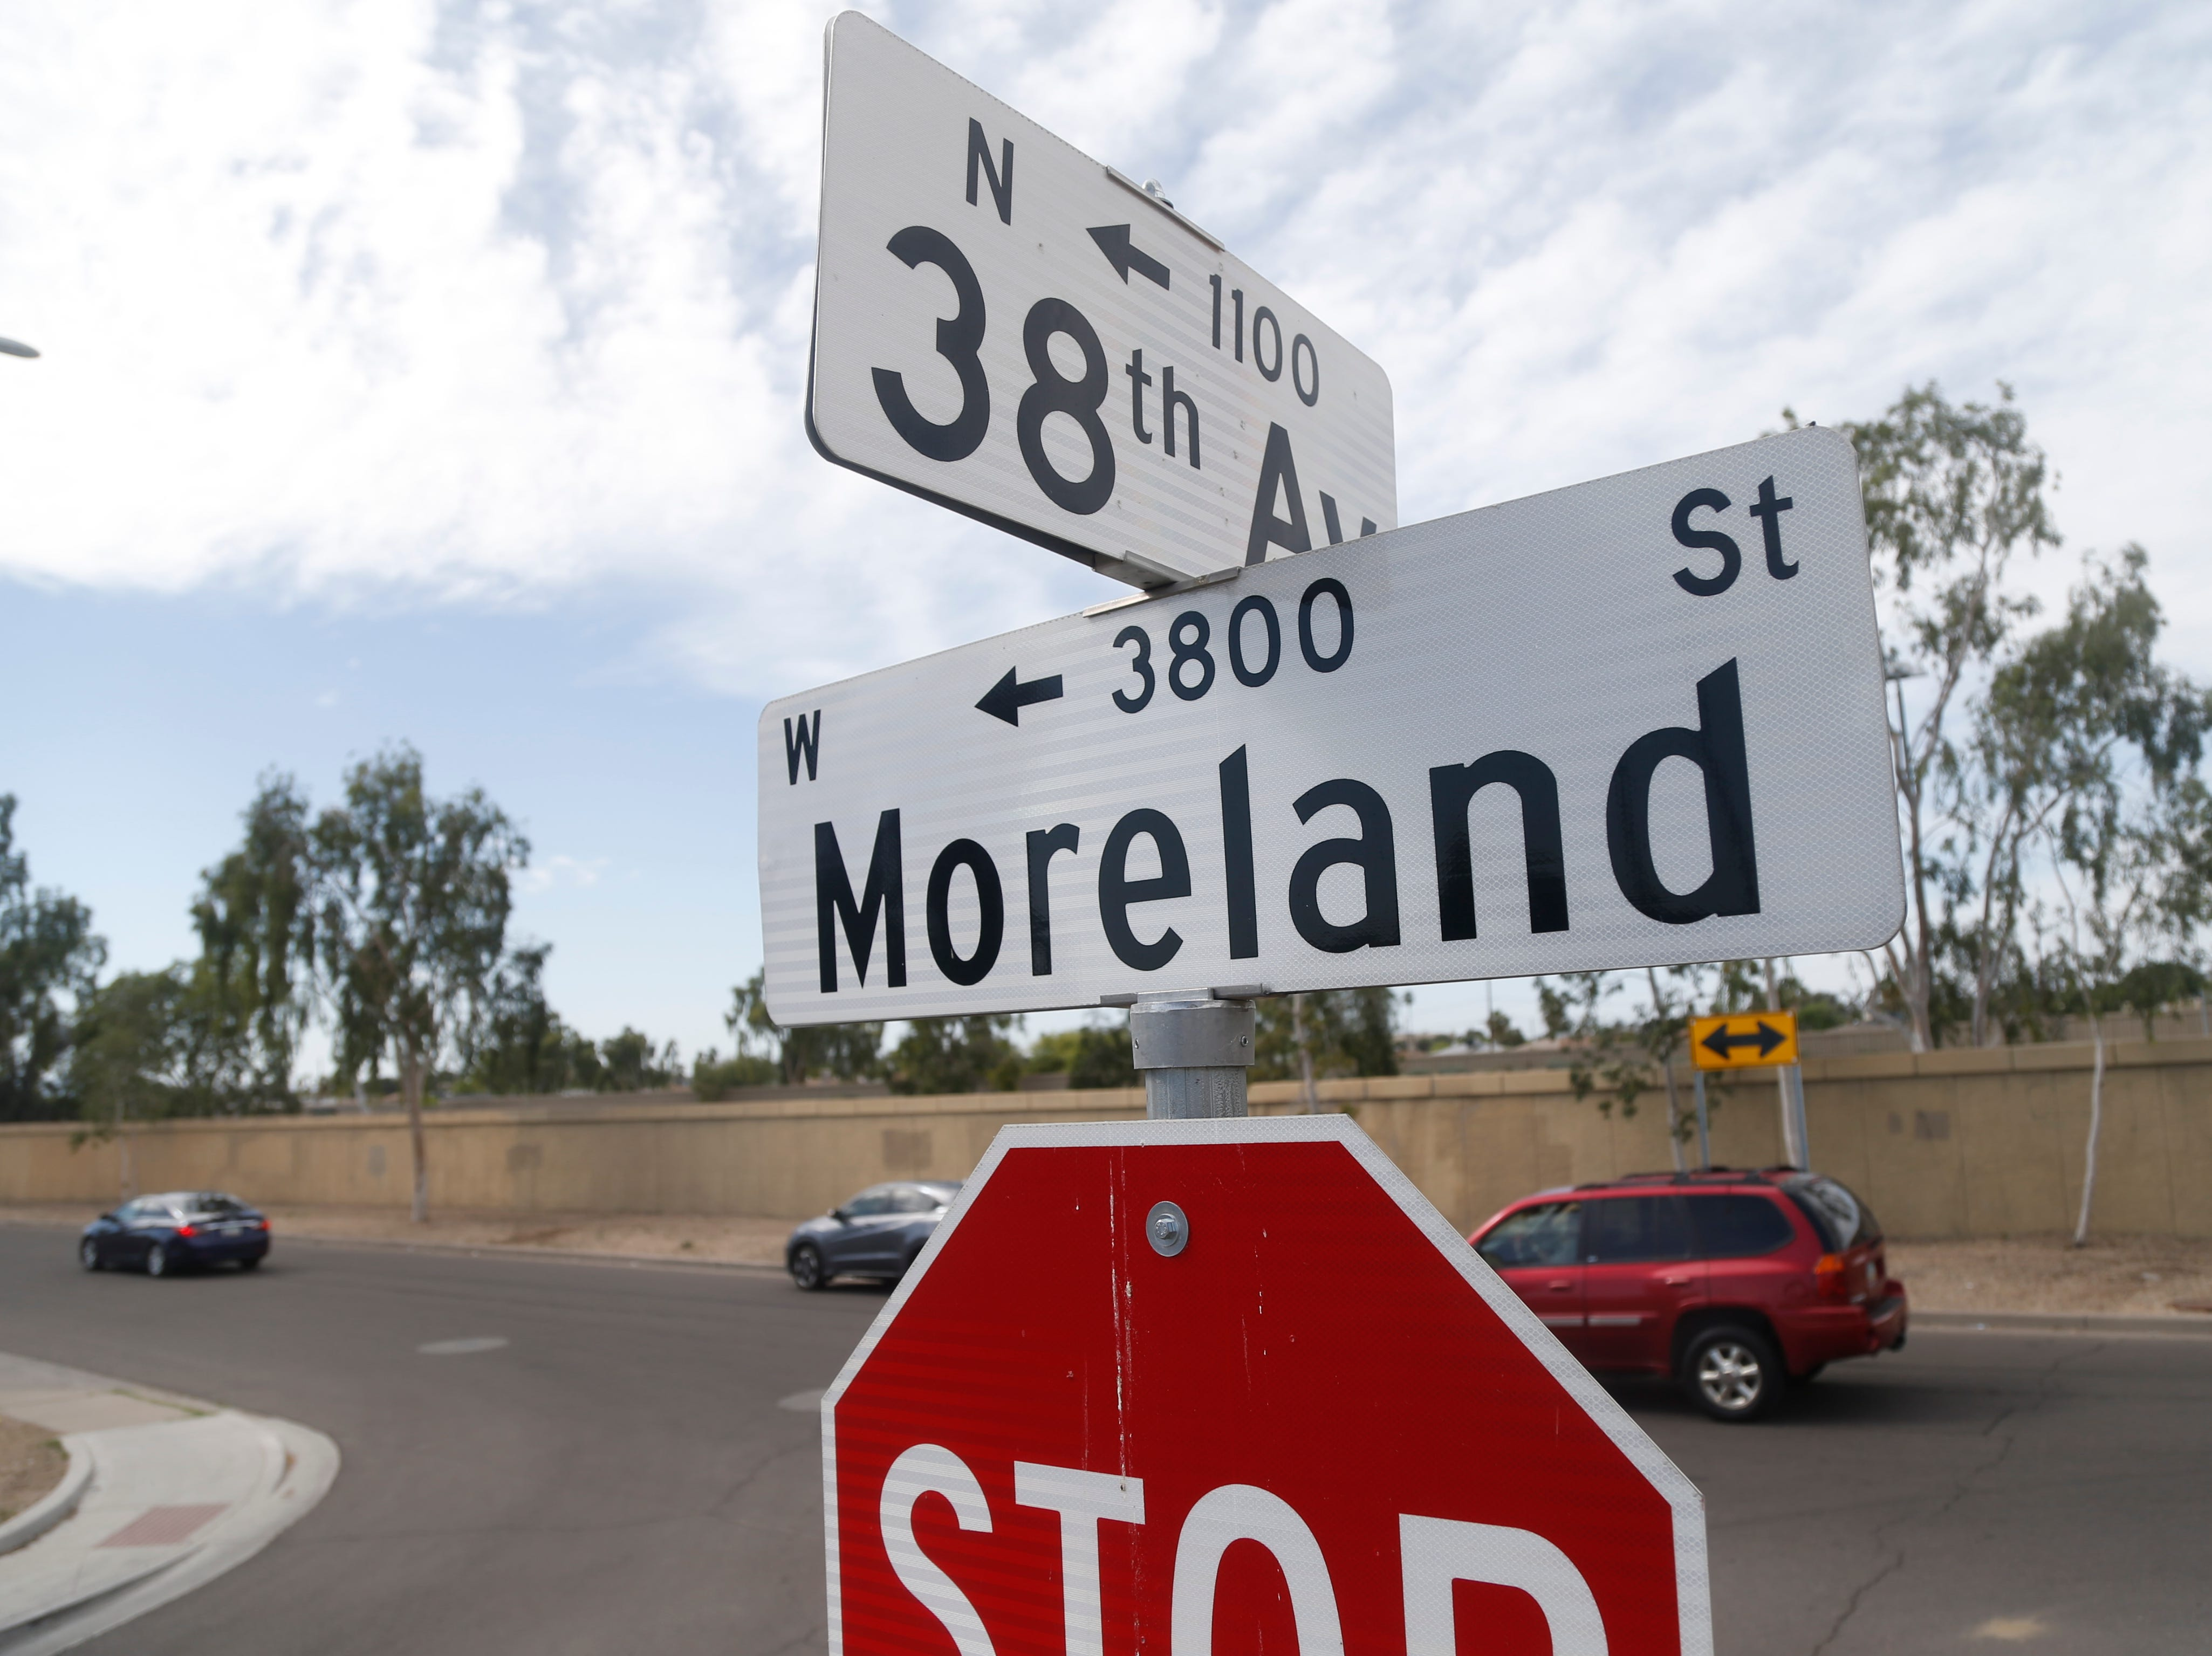 Street signs near the scene where a 10-year-old girl was shot and killed after an unexpected incident possibly involving road rage in Phoenix, Ariz., on April 3, 2019.